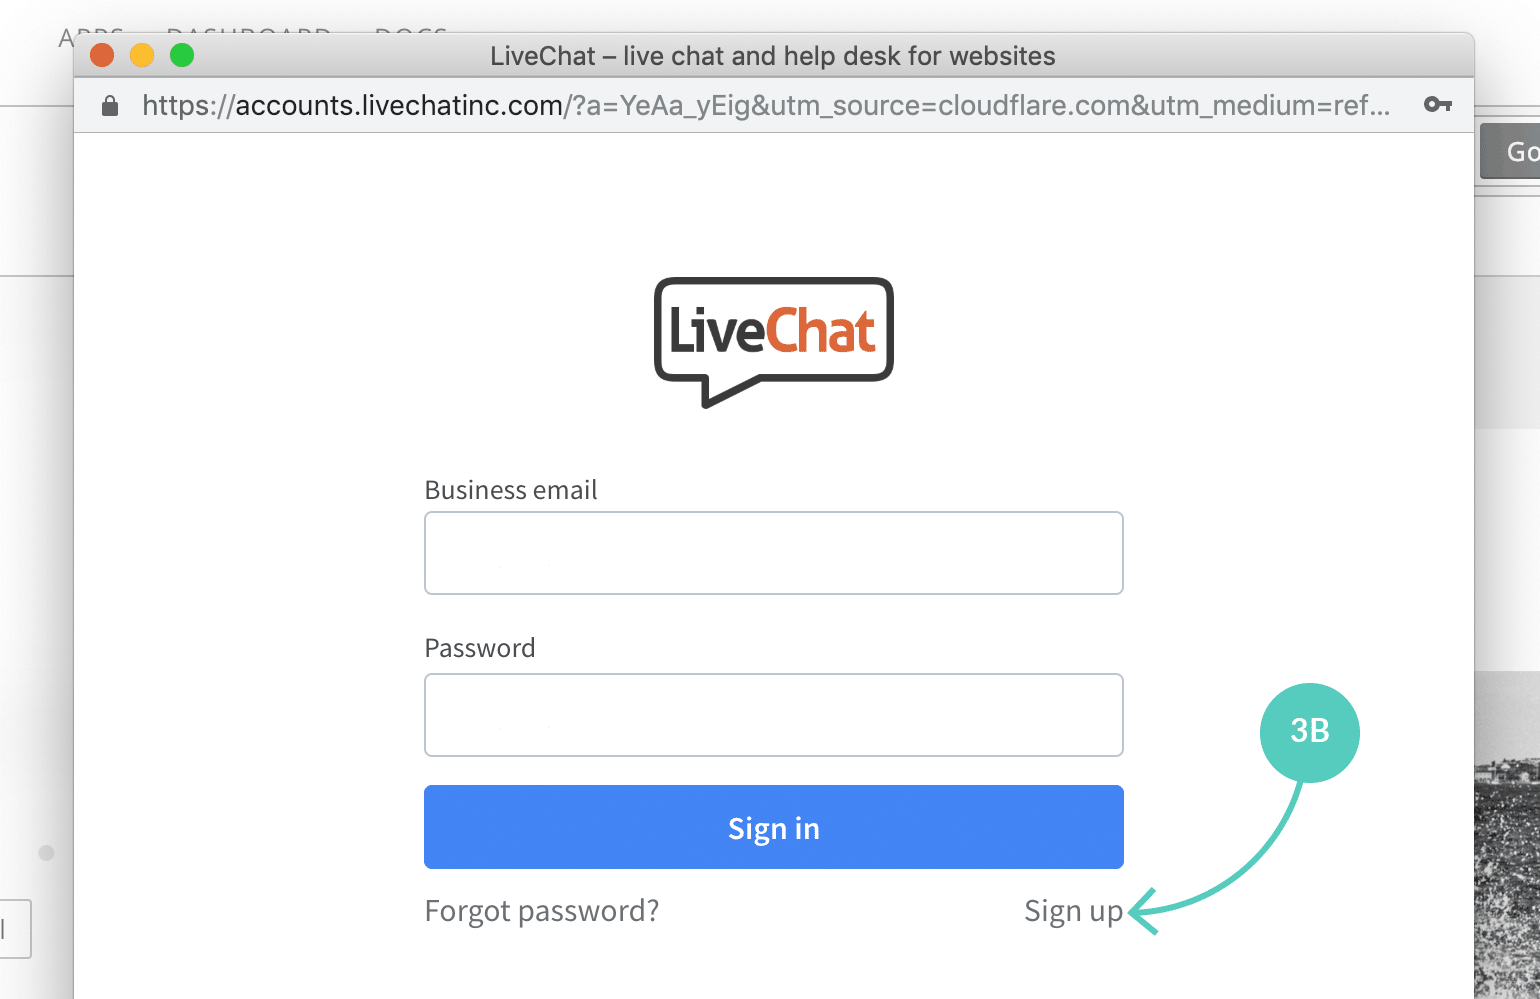 LiveChat sign up page